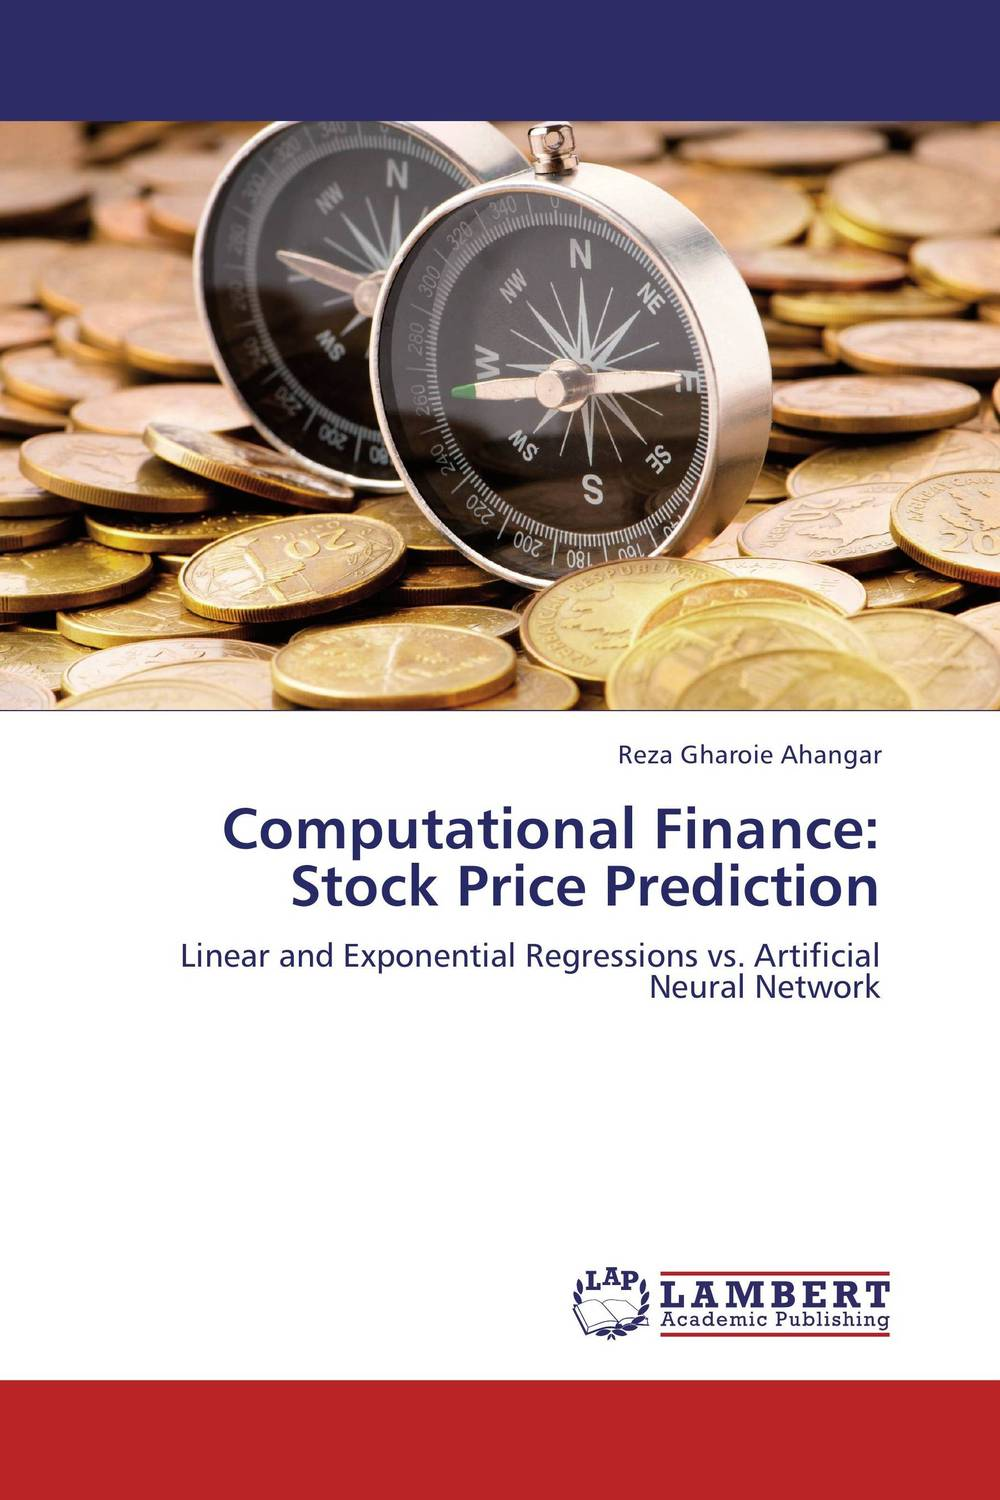 Computational Finance: Stock Price Prediction in stock can pay ad9914bcpz ad9914bcp ad9914